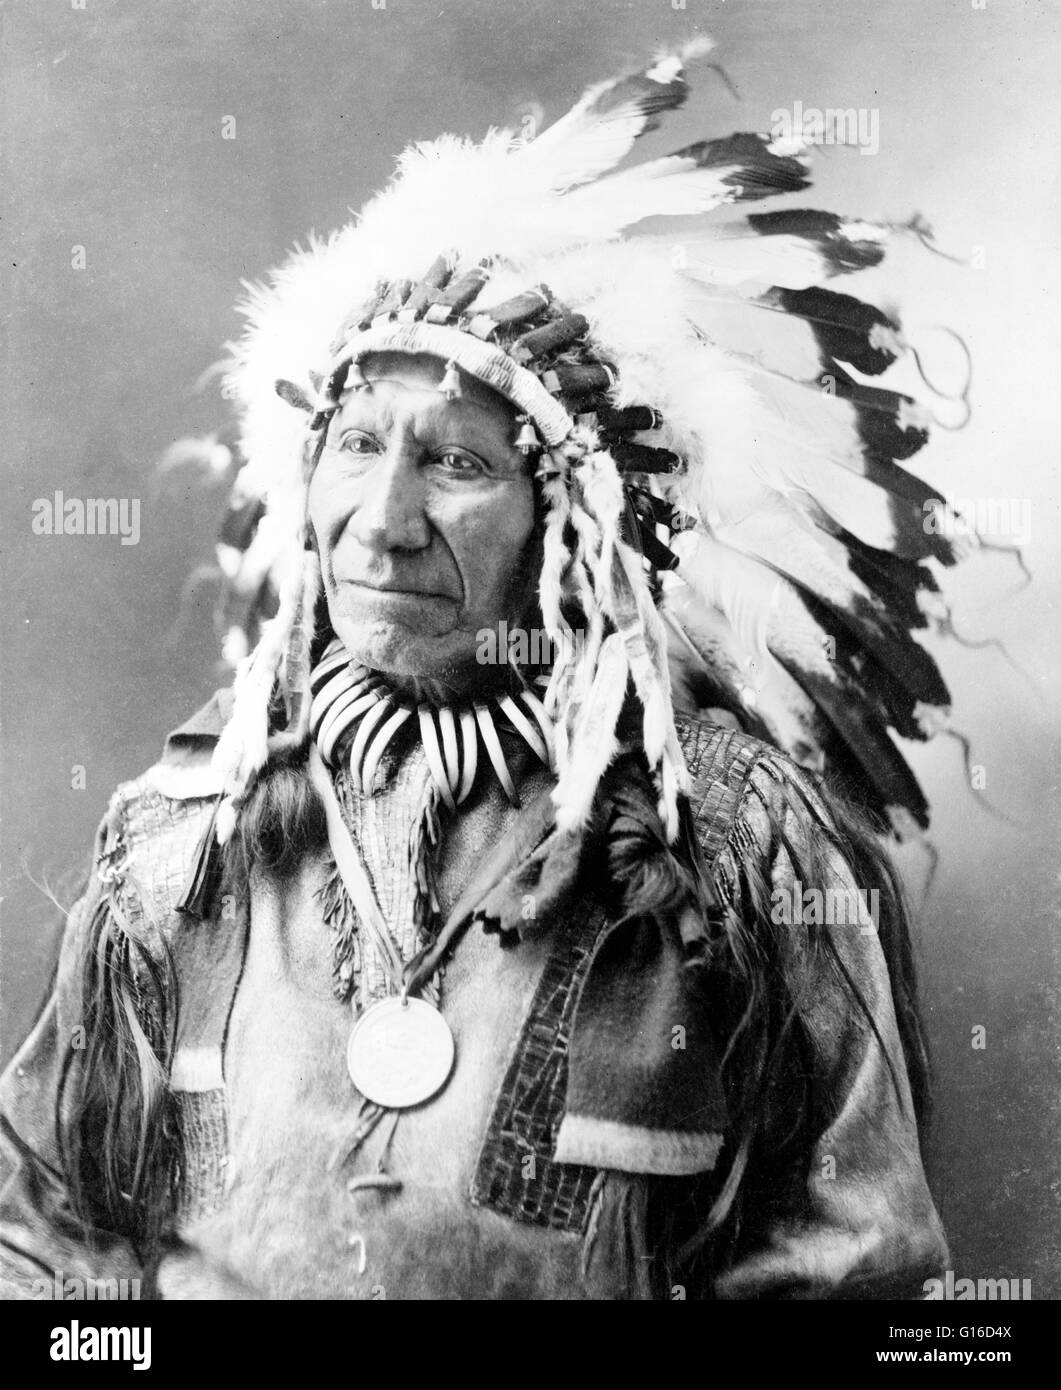 Chief American Horse photographed by John A. Anderson, 1900. American Horse (1840 - December 16, 1908) was an Oglala - Stock Image